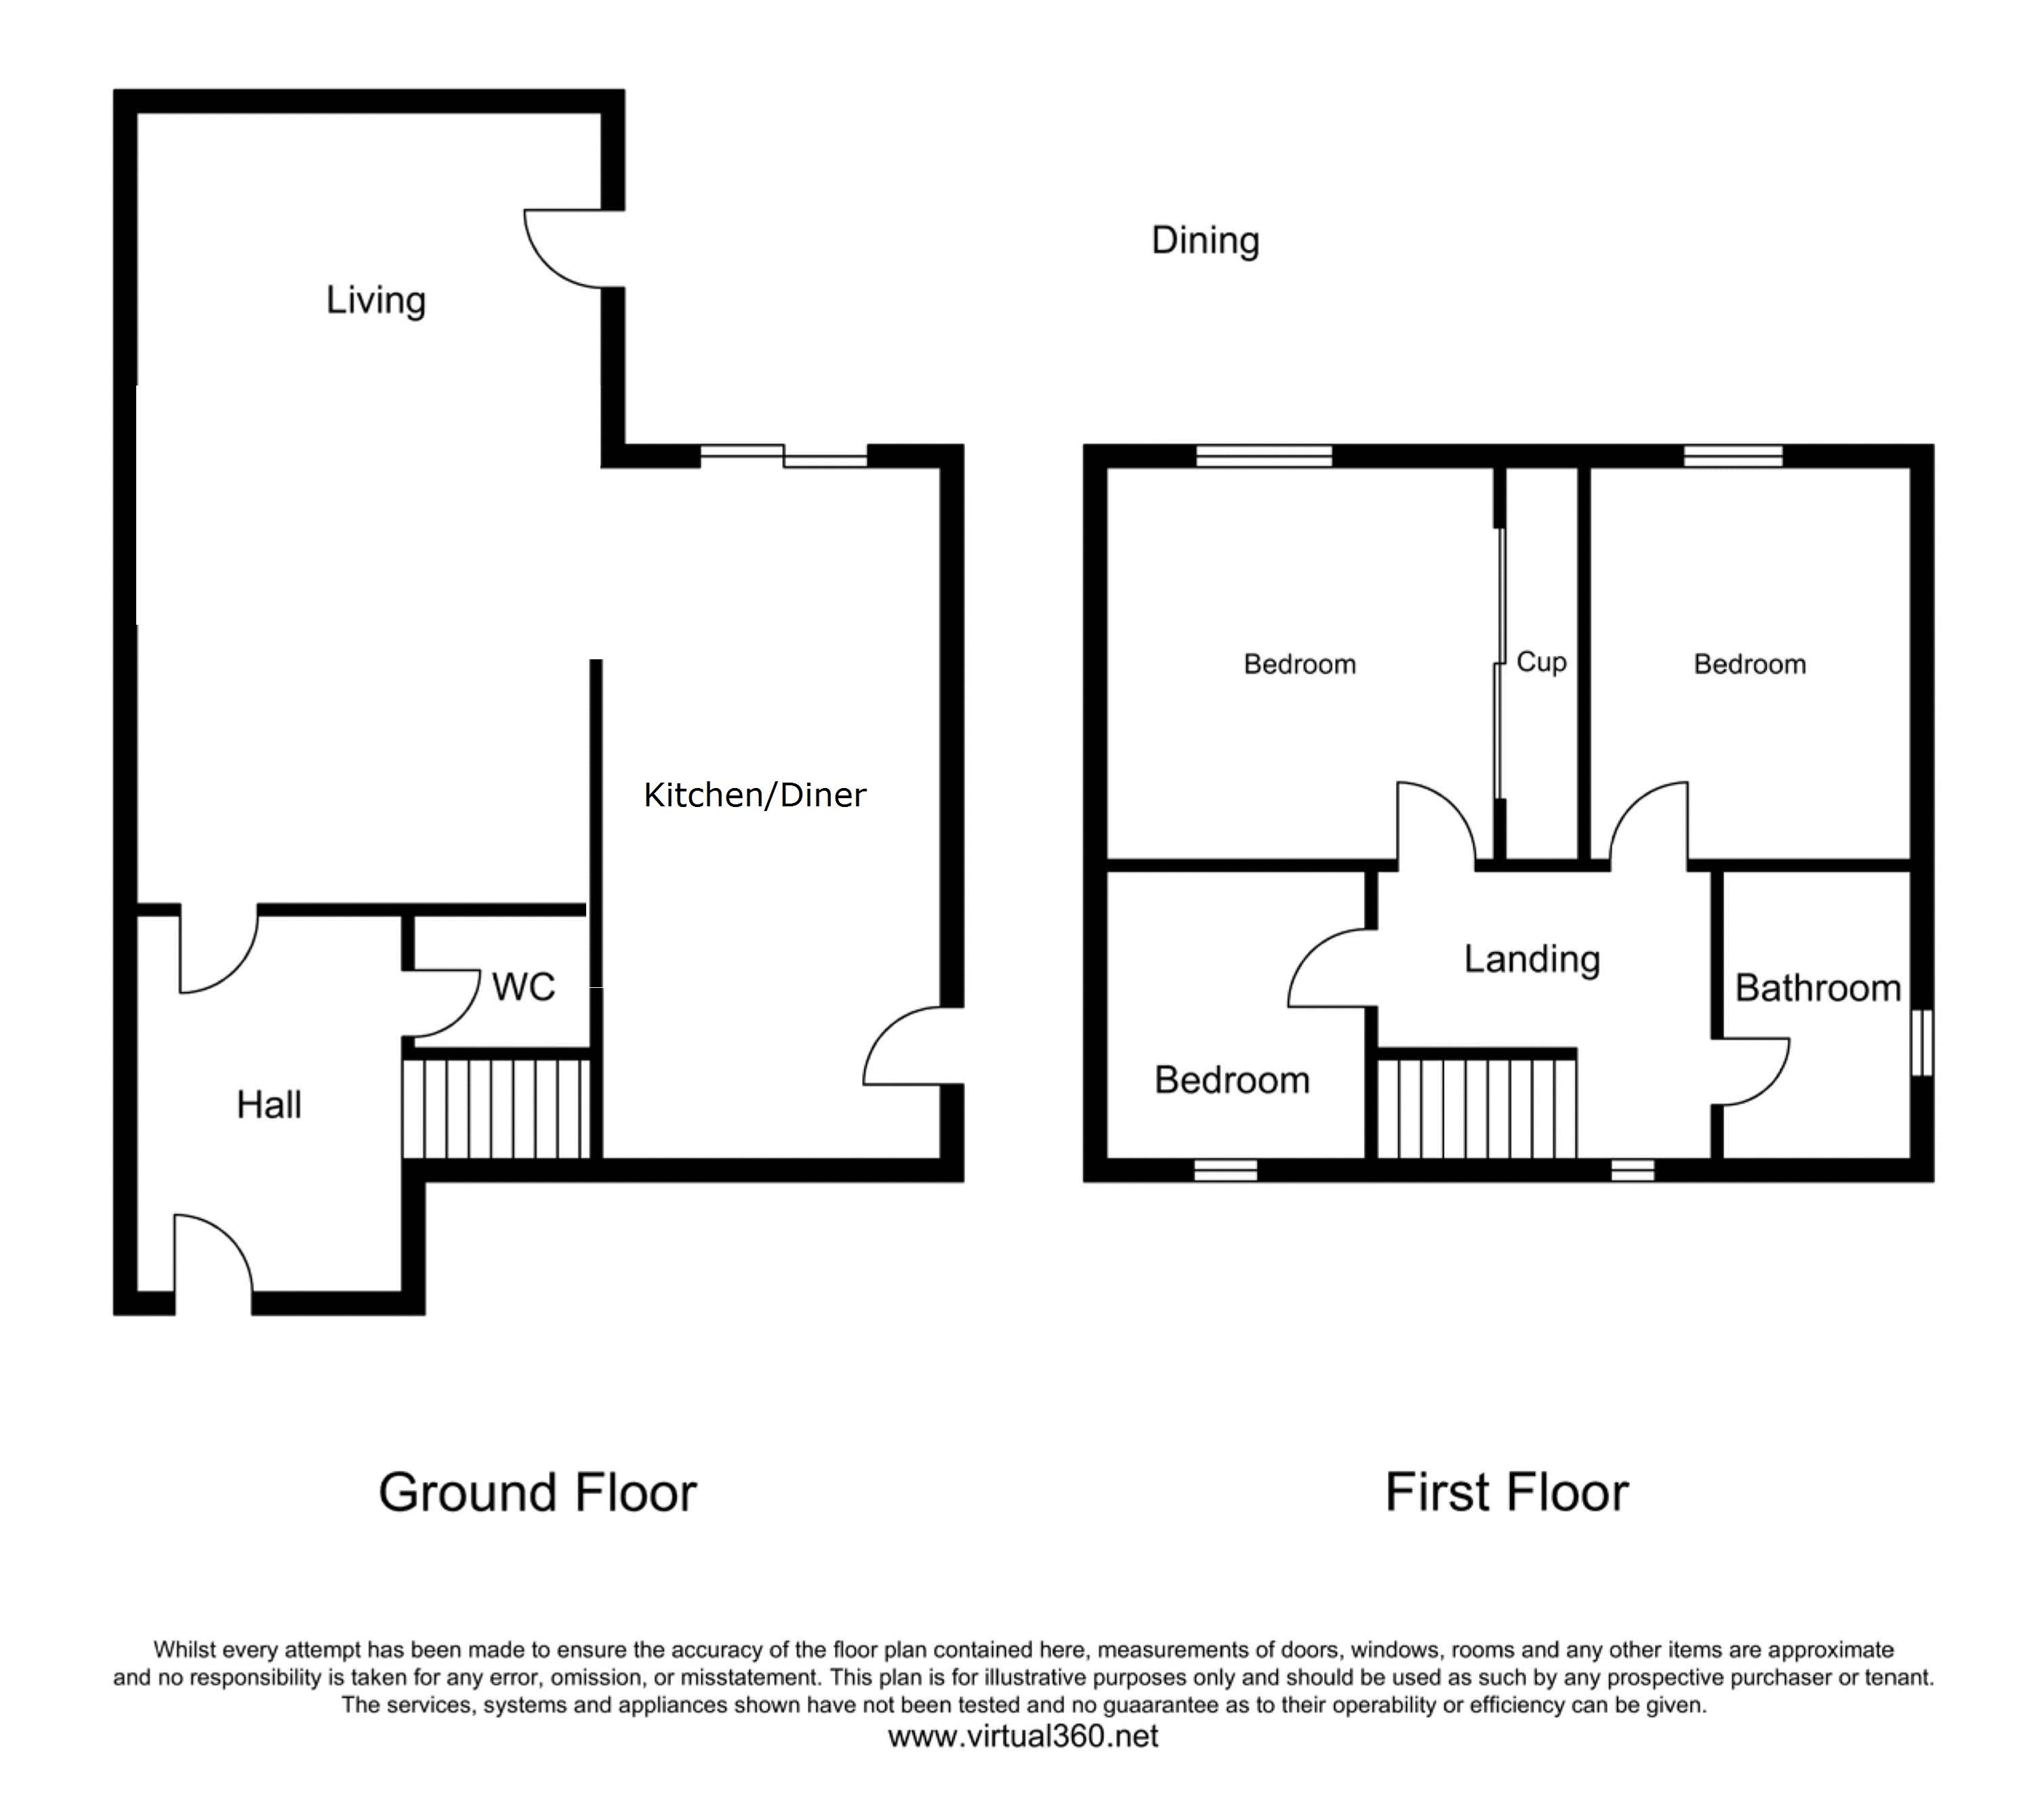 Morrells, Basildon, Essex floor plan